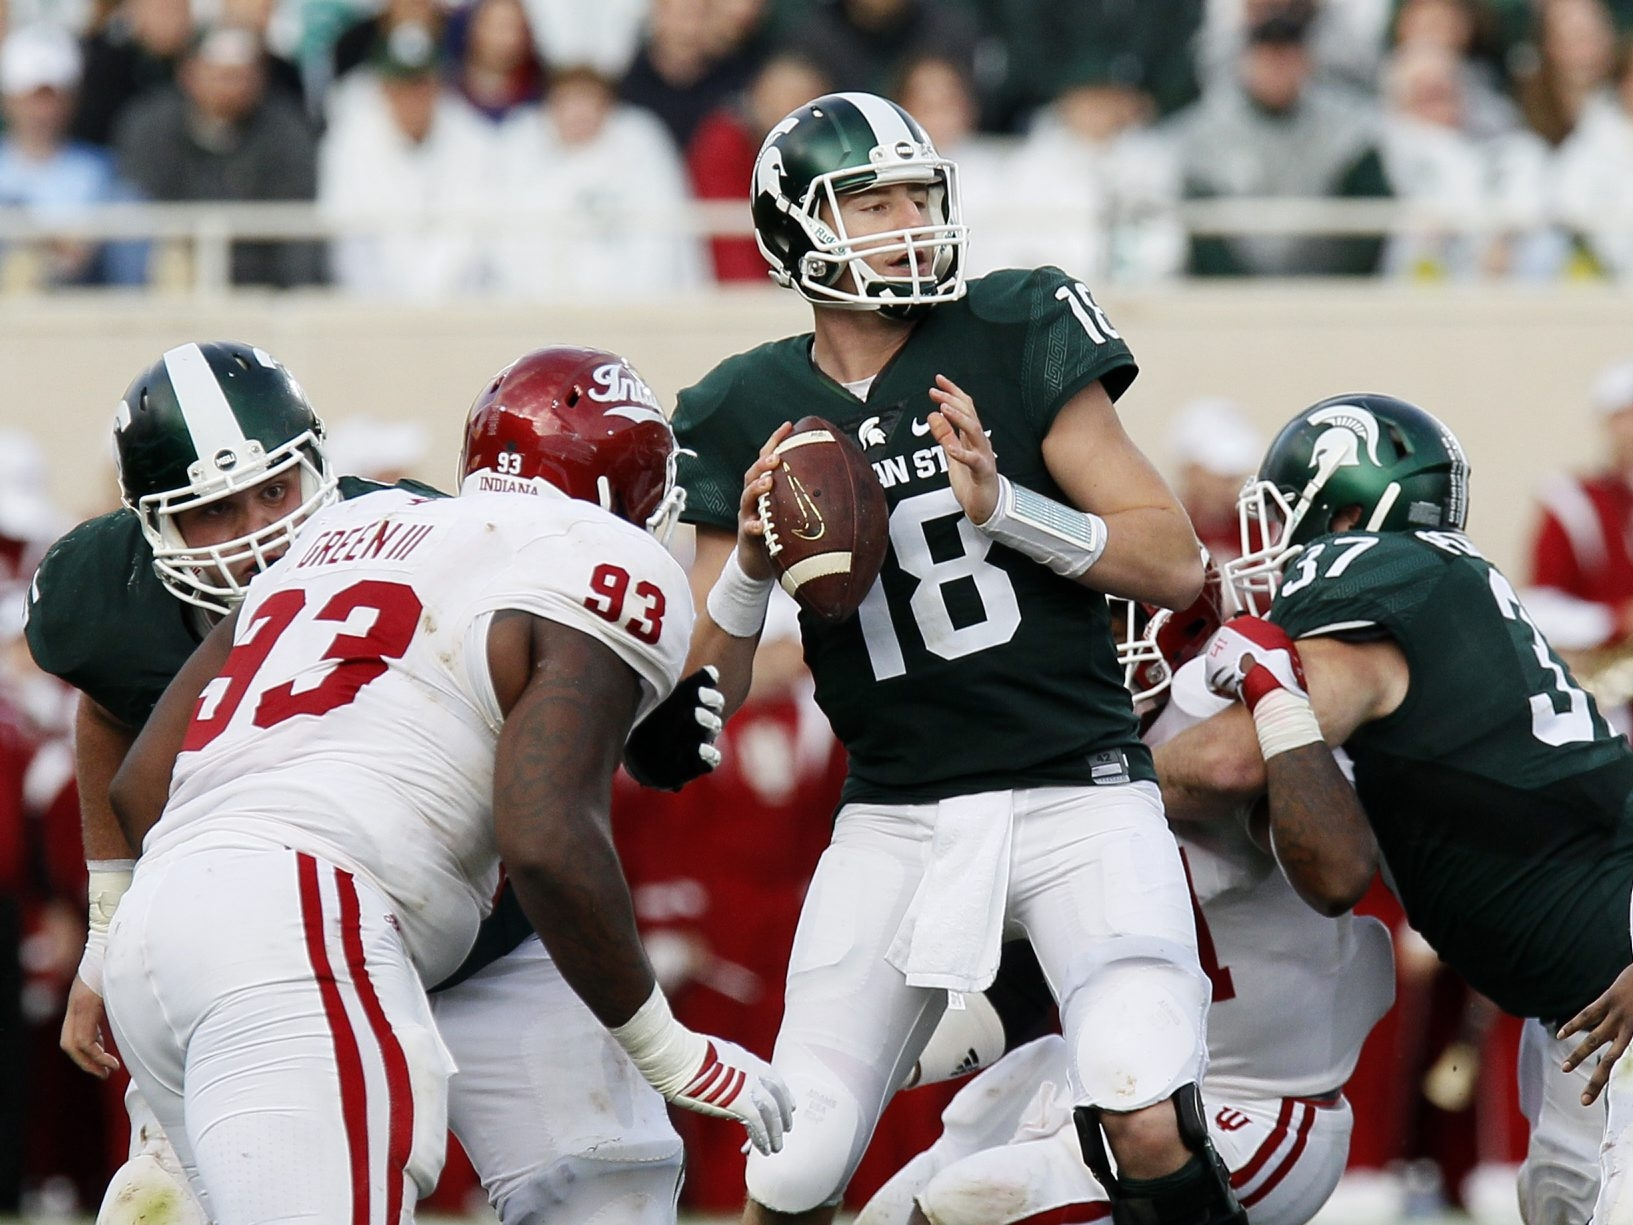 Michigan State Spartans quarterback Connor Cook (18) looks to pass the ball as Indiana Hoosiers defensive lineman Ralph Green III (93) closes in on Oct. 24 in East Lansing, Mich.